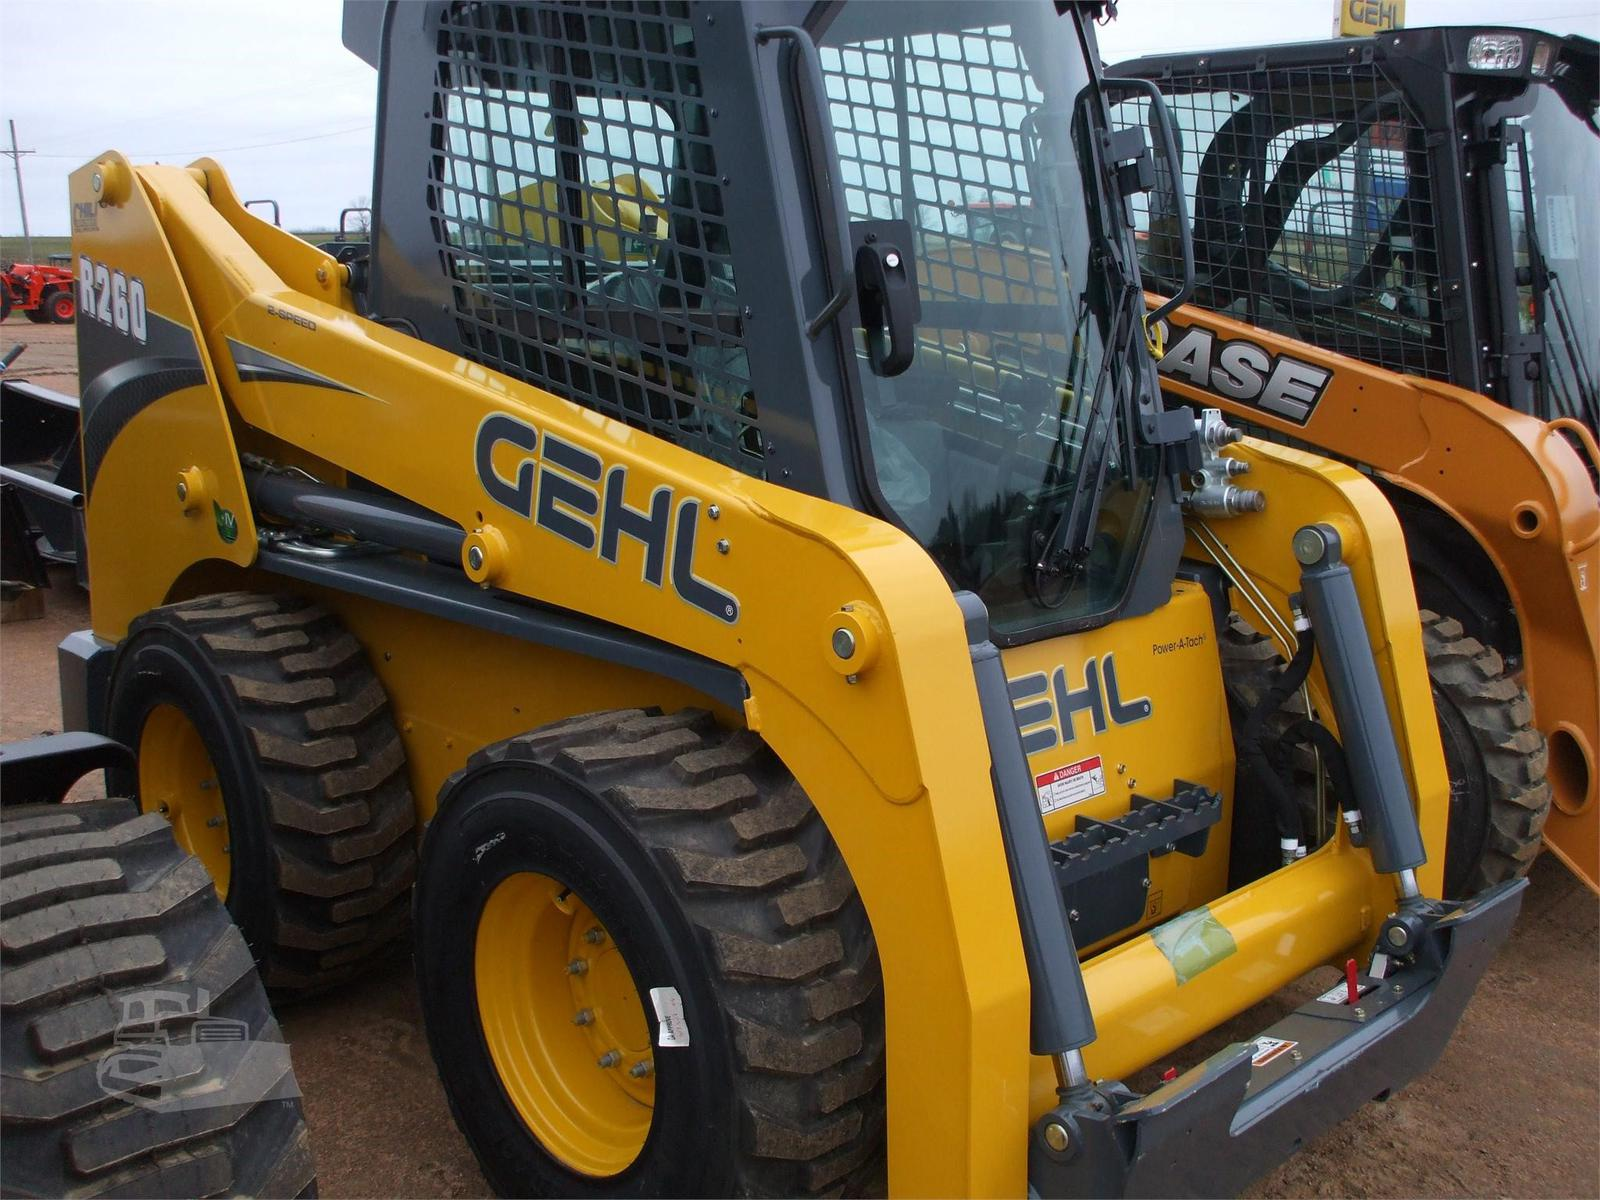 2016 Gehl R260 for sale in Chili, WI  Chili Implement Co